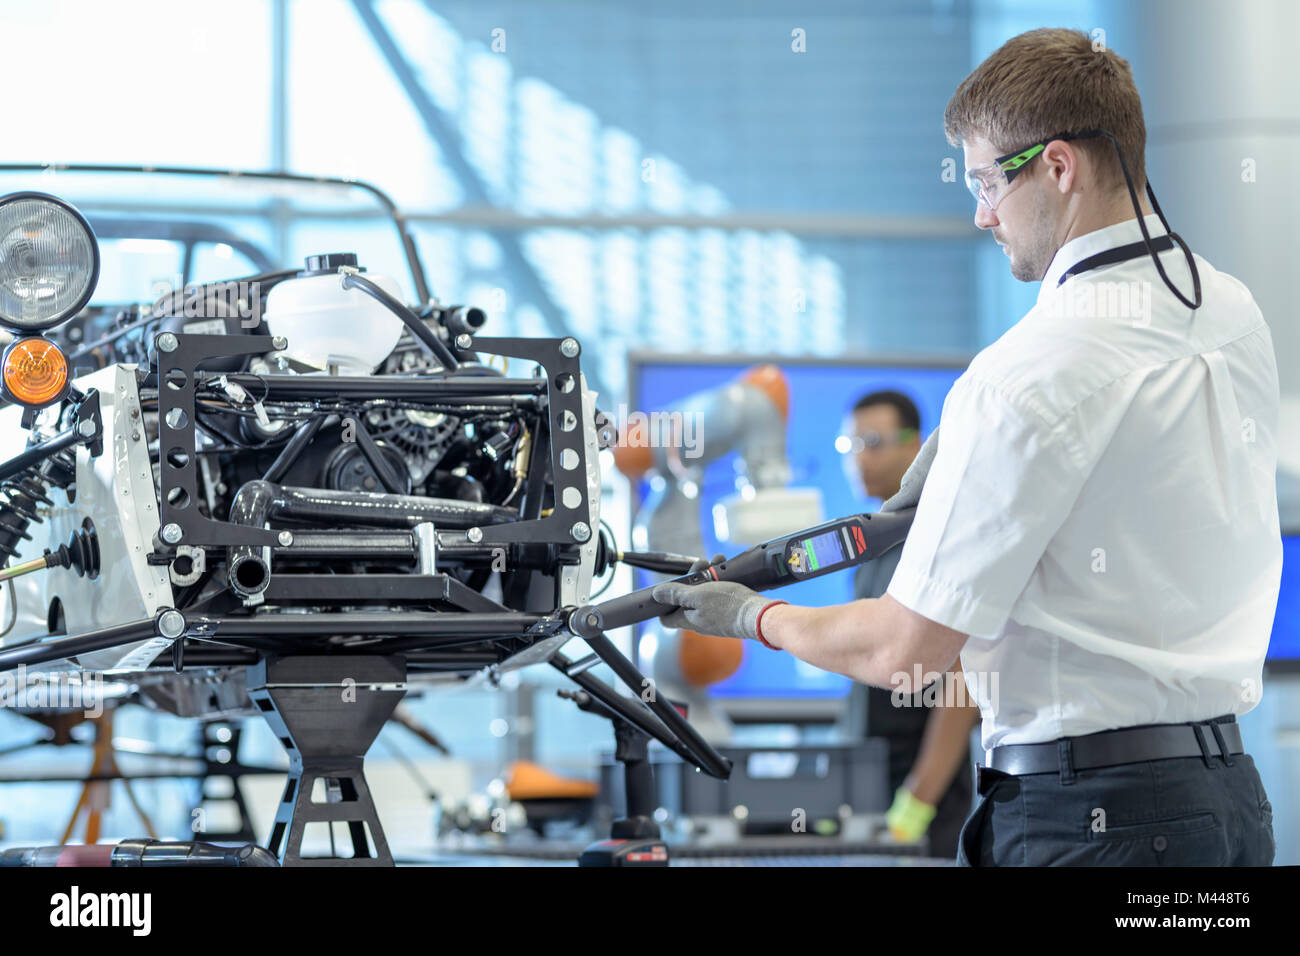 Engineer using computerised tools to assemble car in robotics research facility - Stock Image